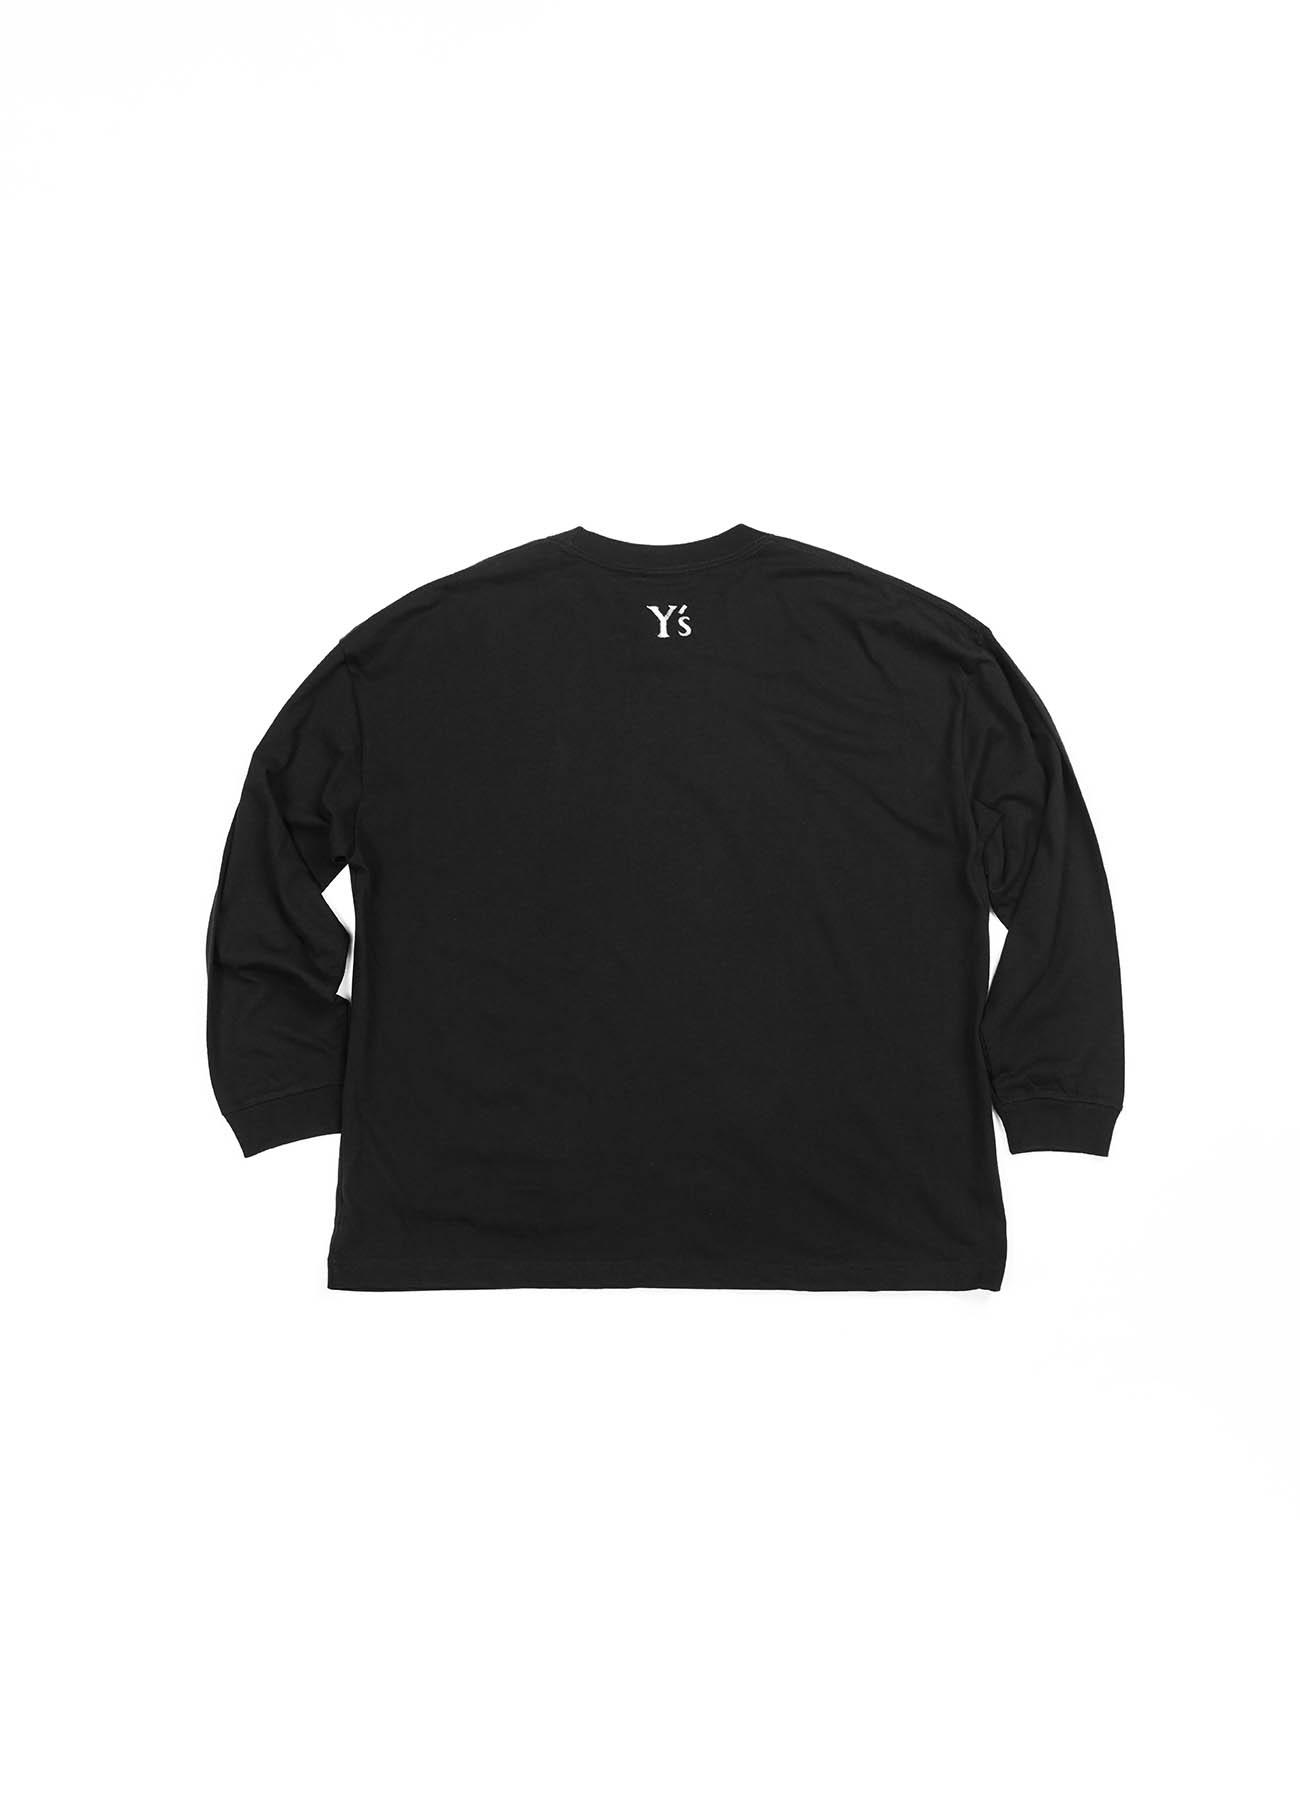 THE SHOP Limited product Y's logo Long sleeve T-shirts (Wide)